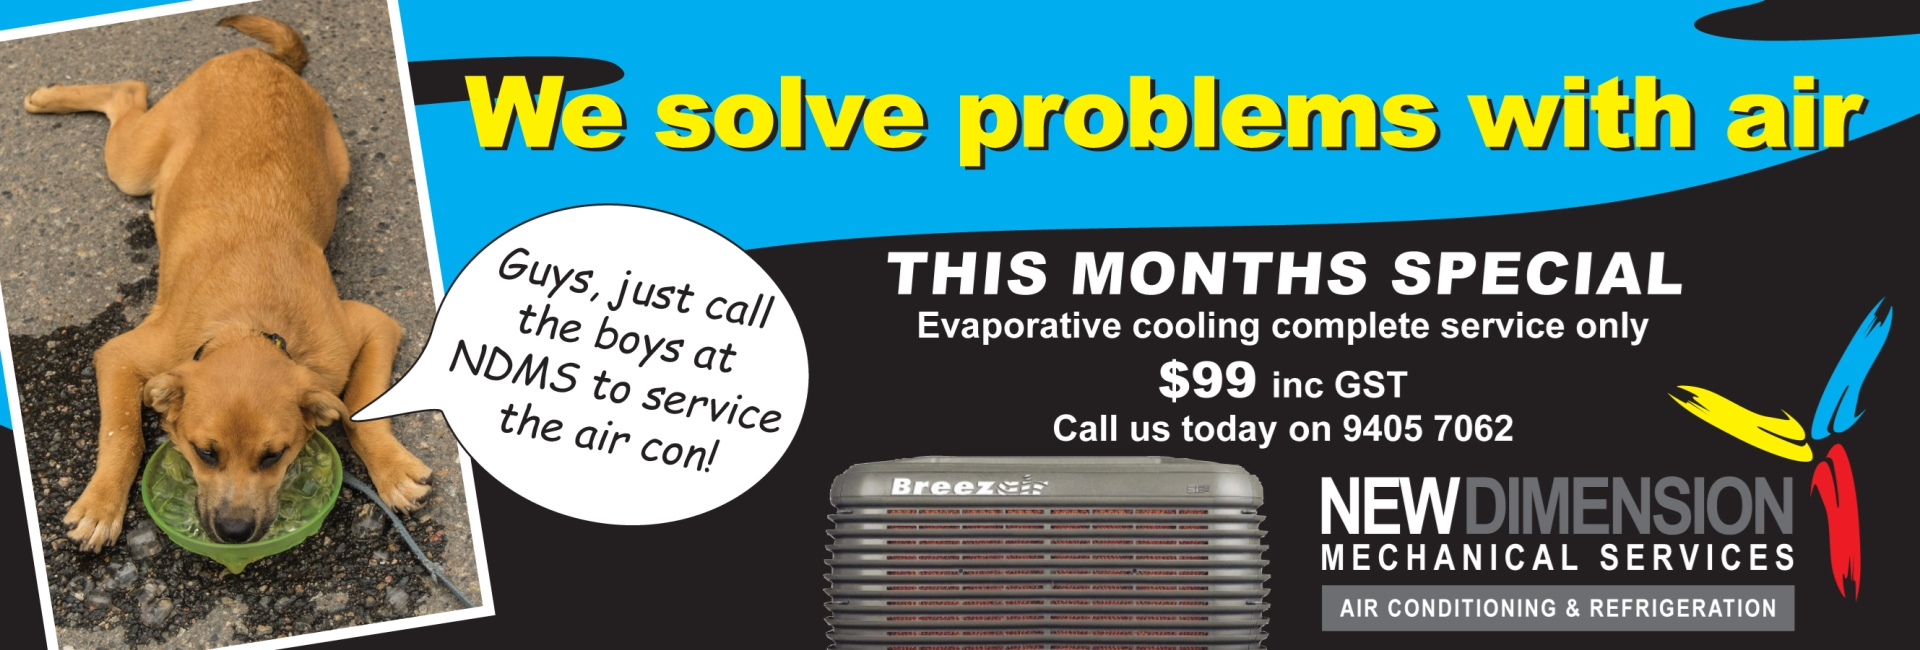 NDMS Evaporative Cooling Special